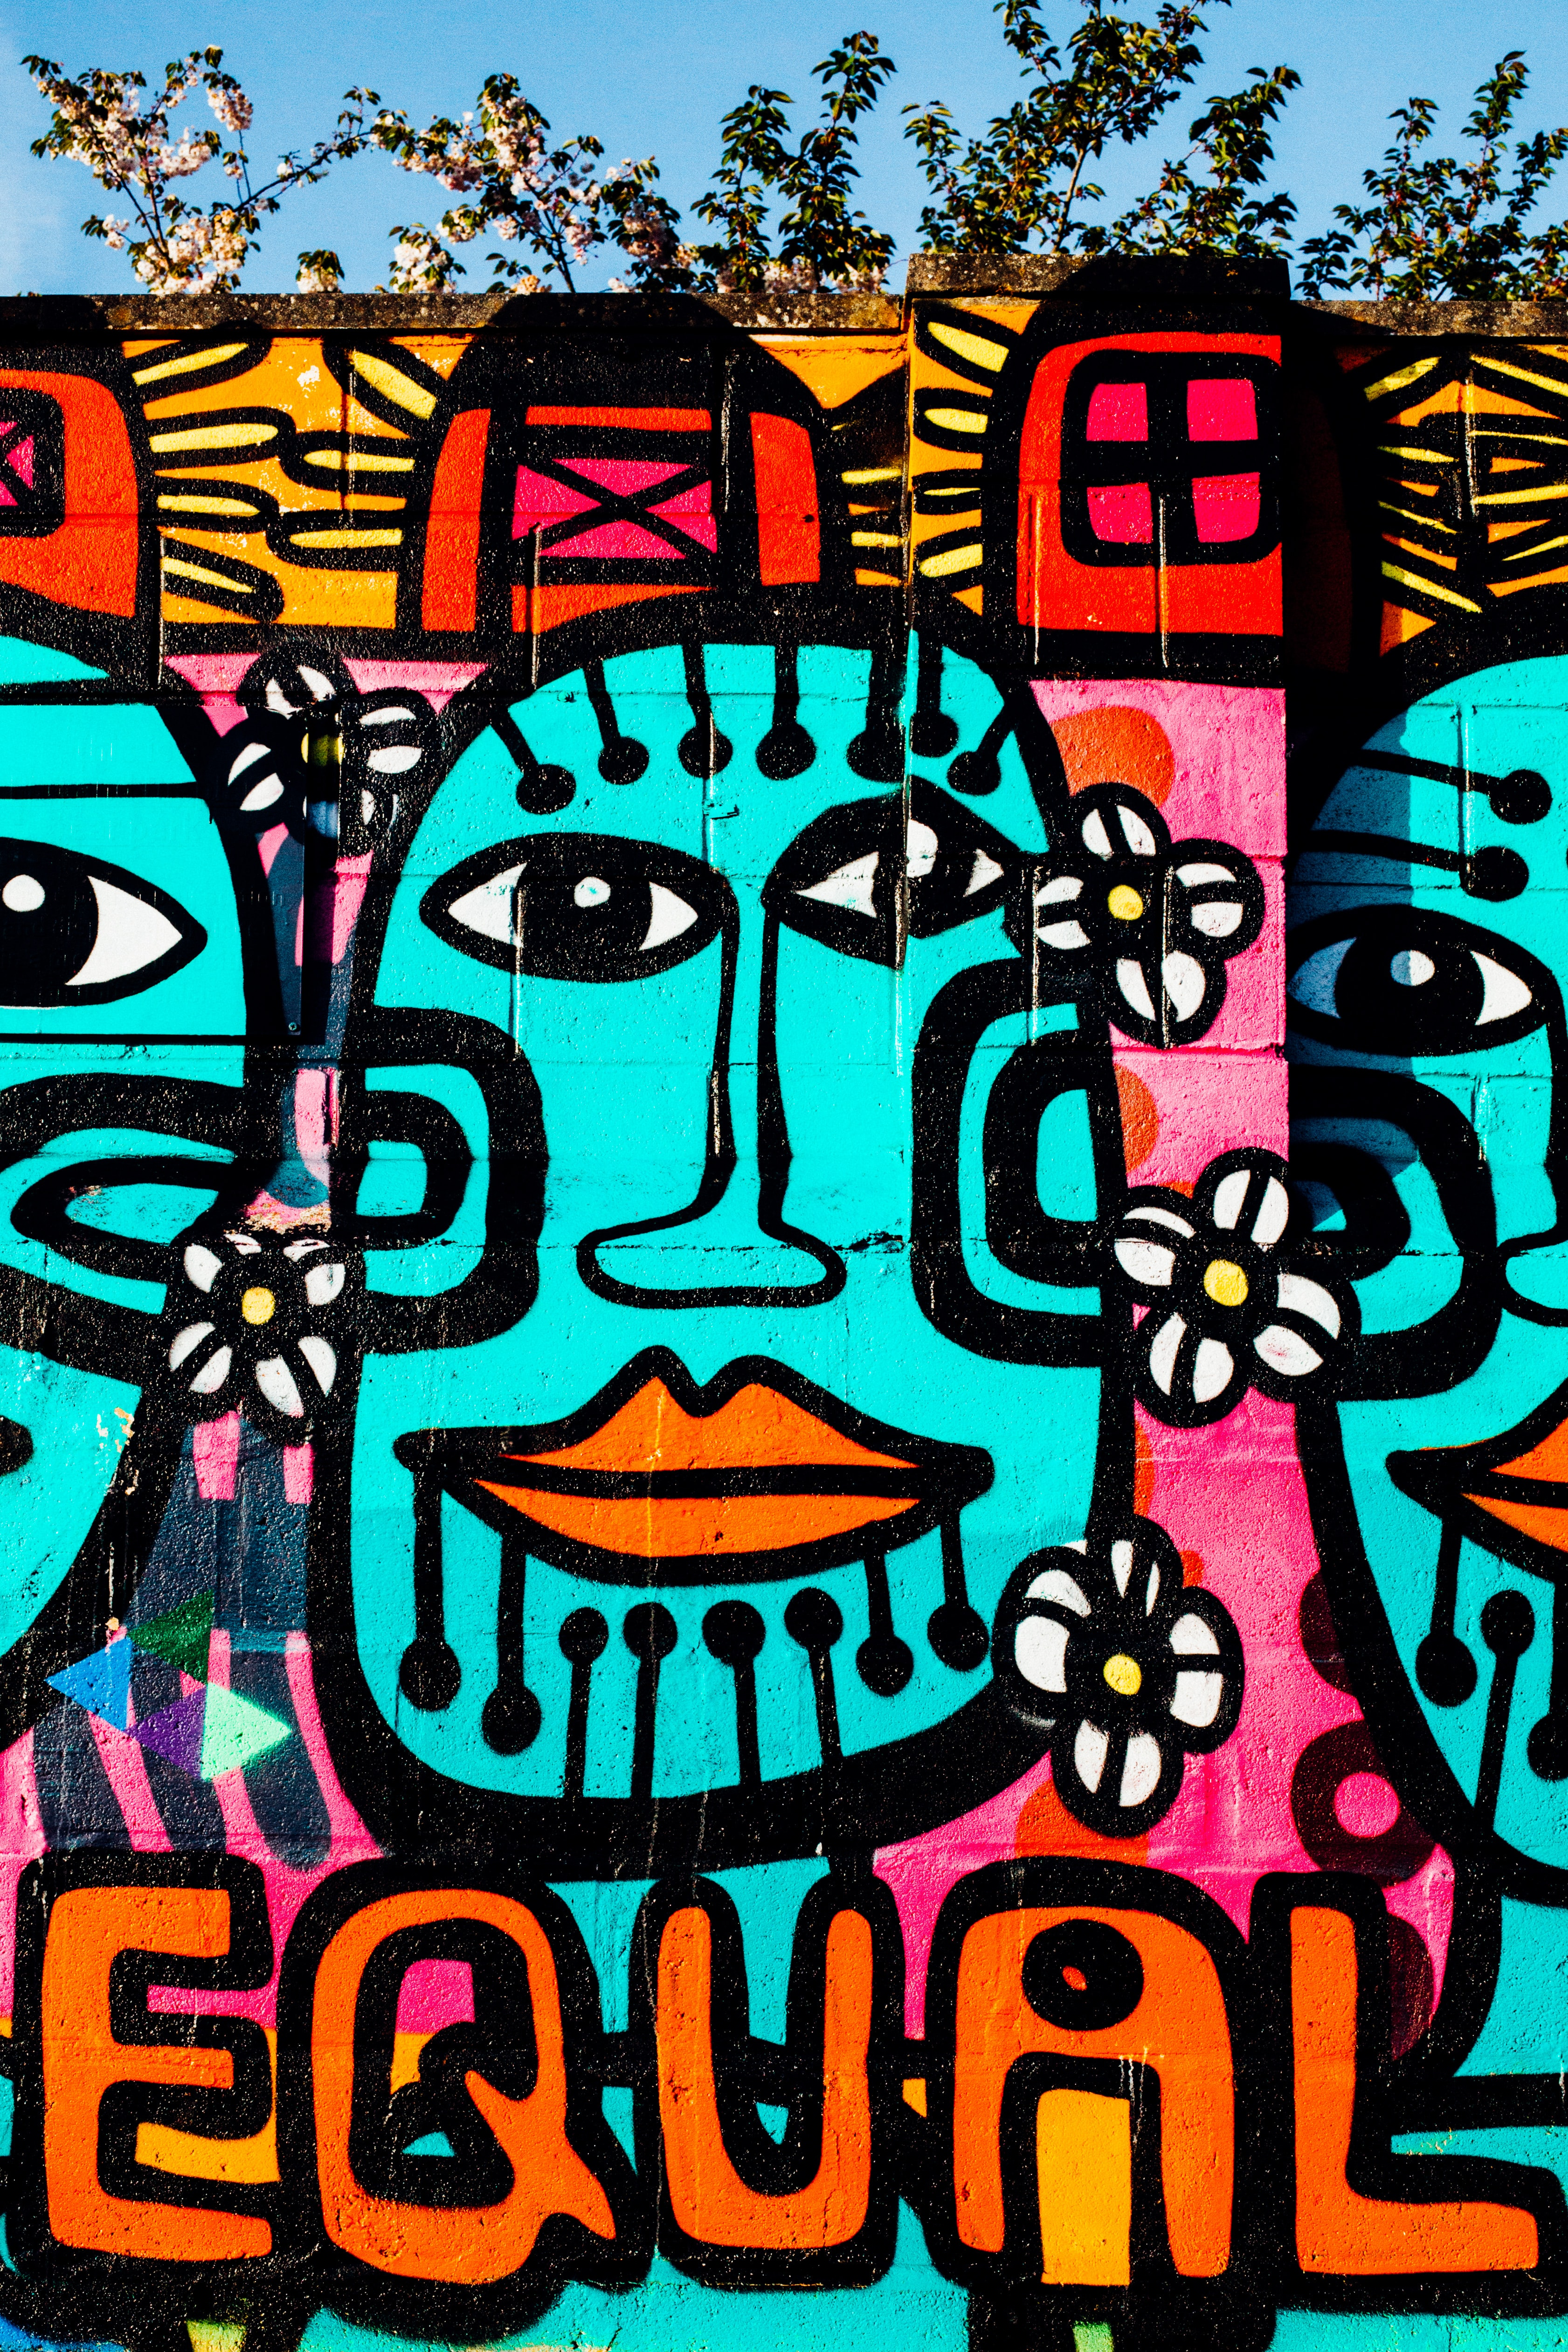 Brightly colored urban graffiti mural artwork on wall with equal text and tribal faces